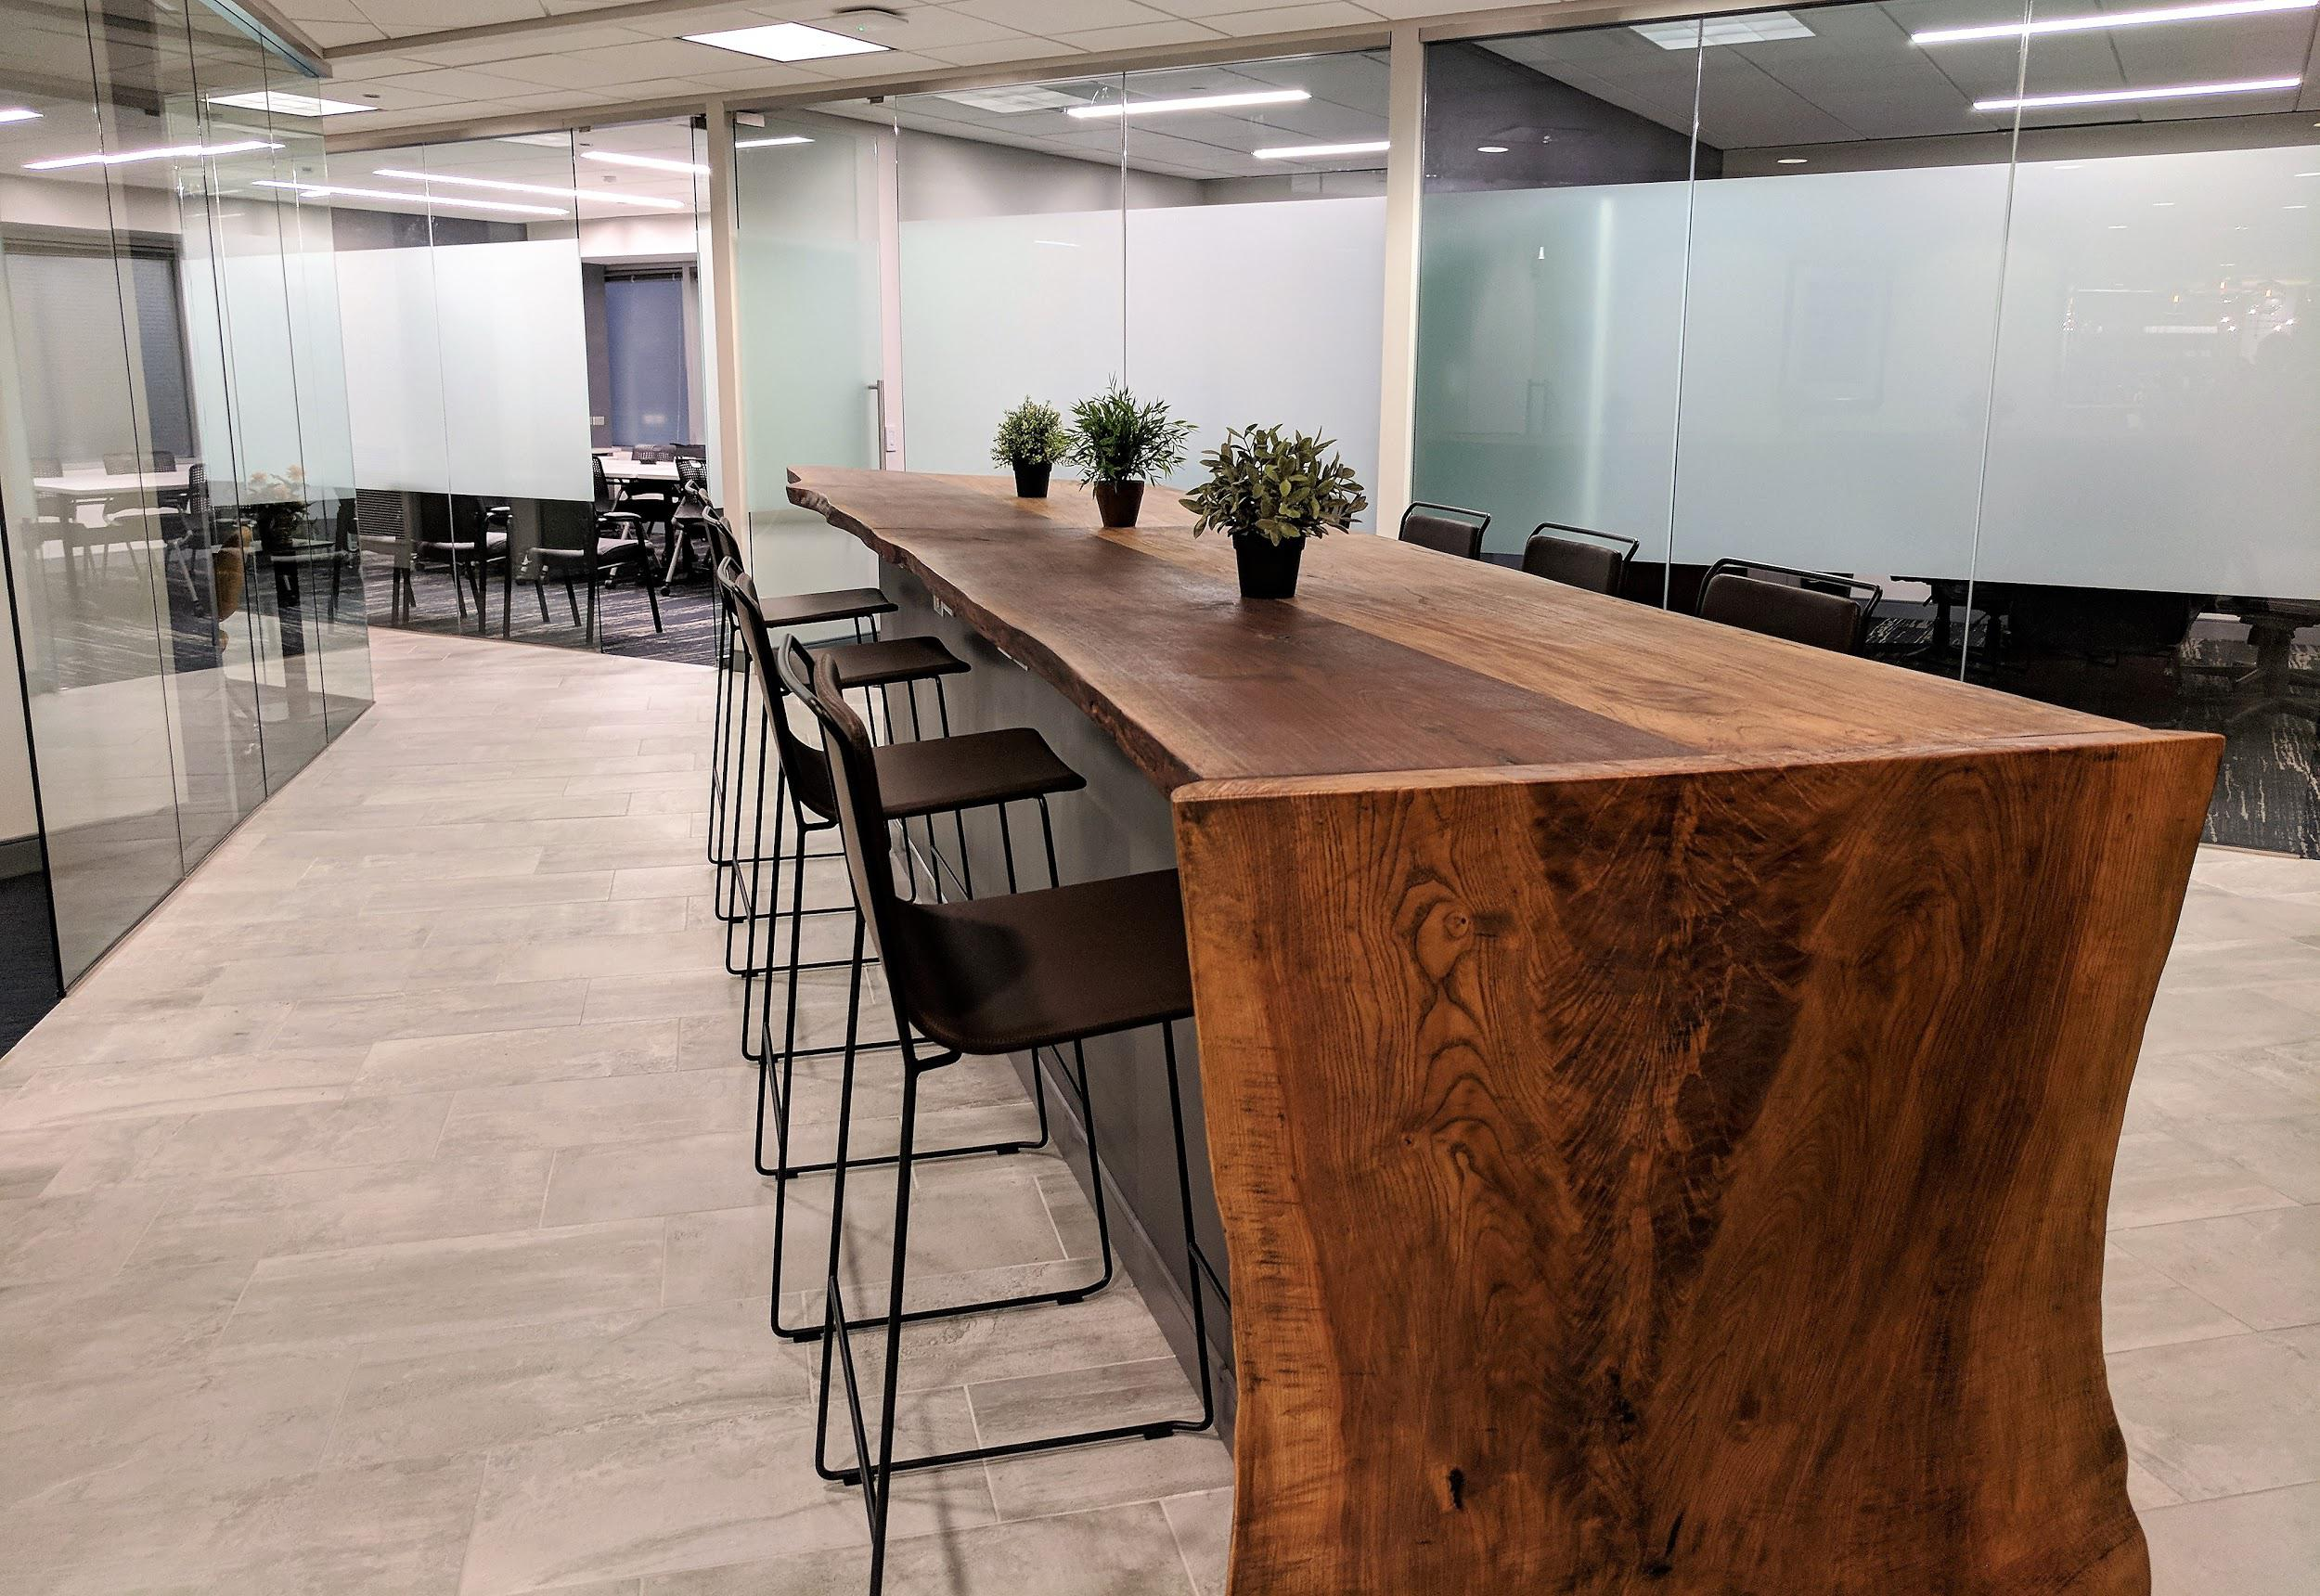 Why Attorneys Choose to Stay in Coworking Spaces